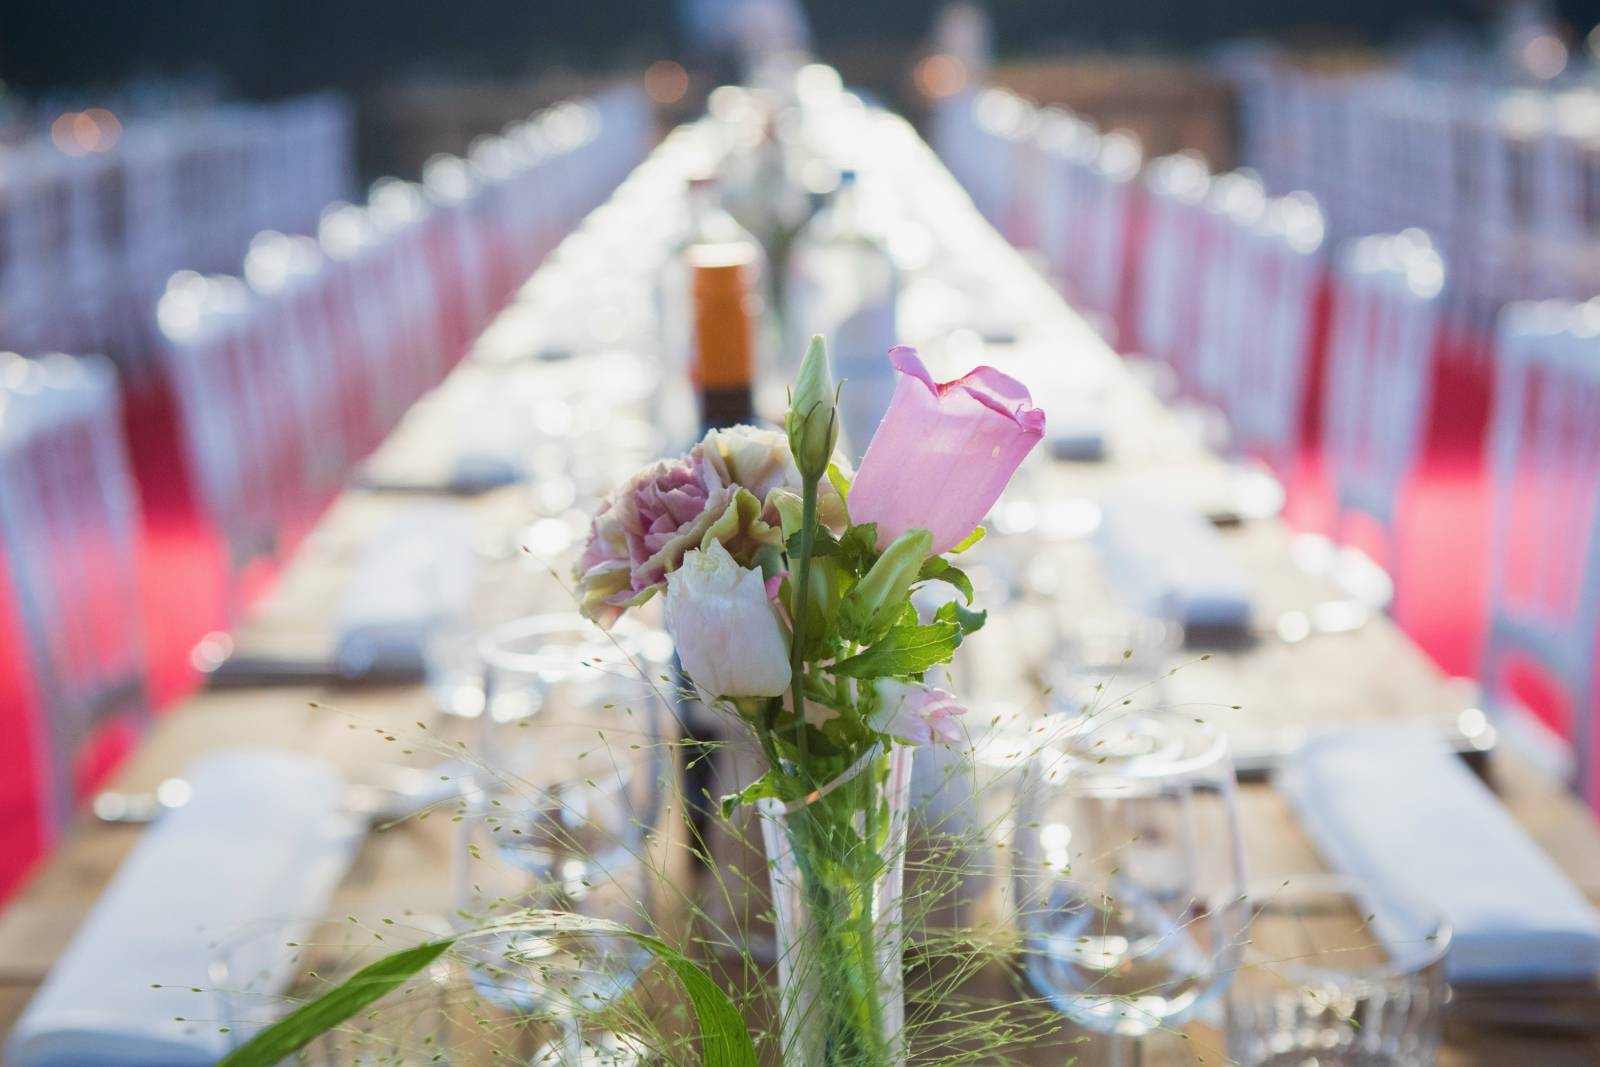 Cuisine Catering - Catering - Traiteur – House of Weddings - 7